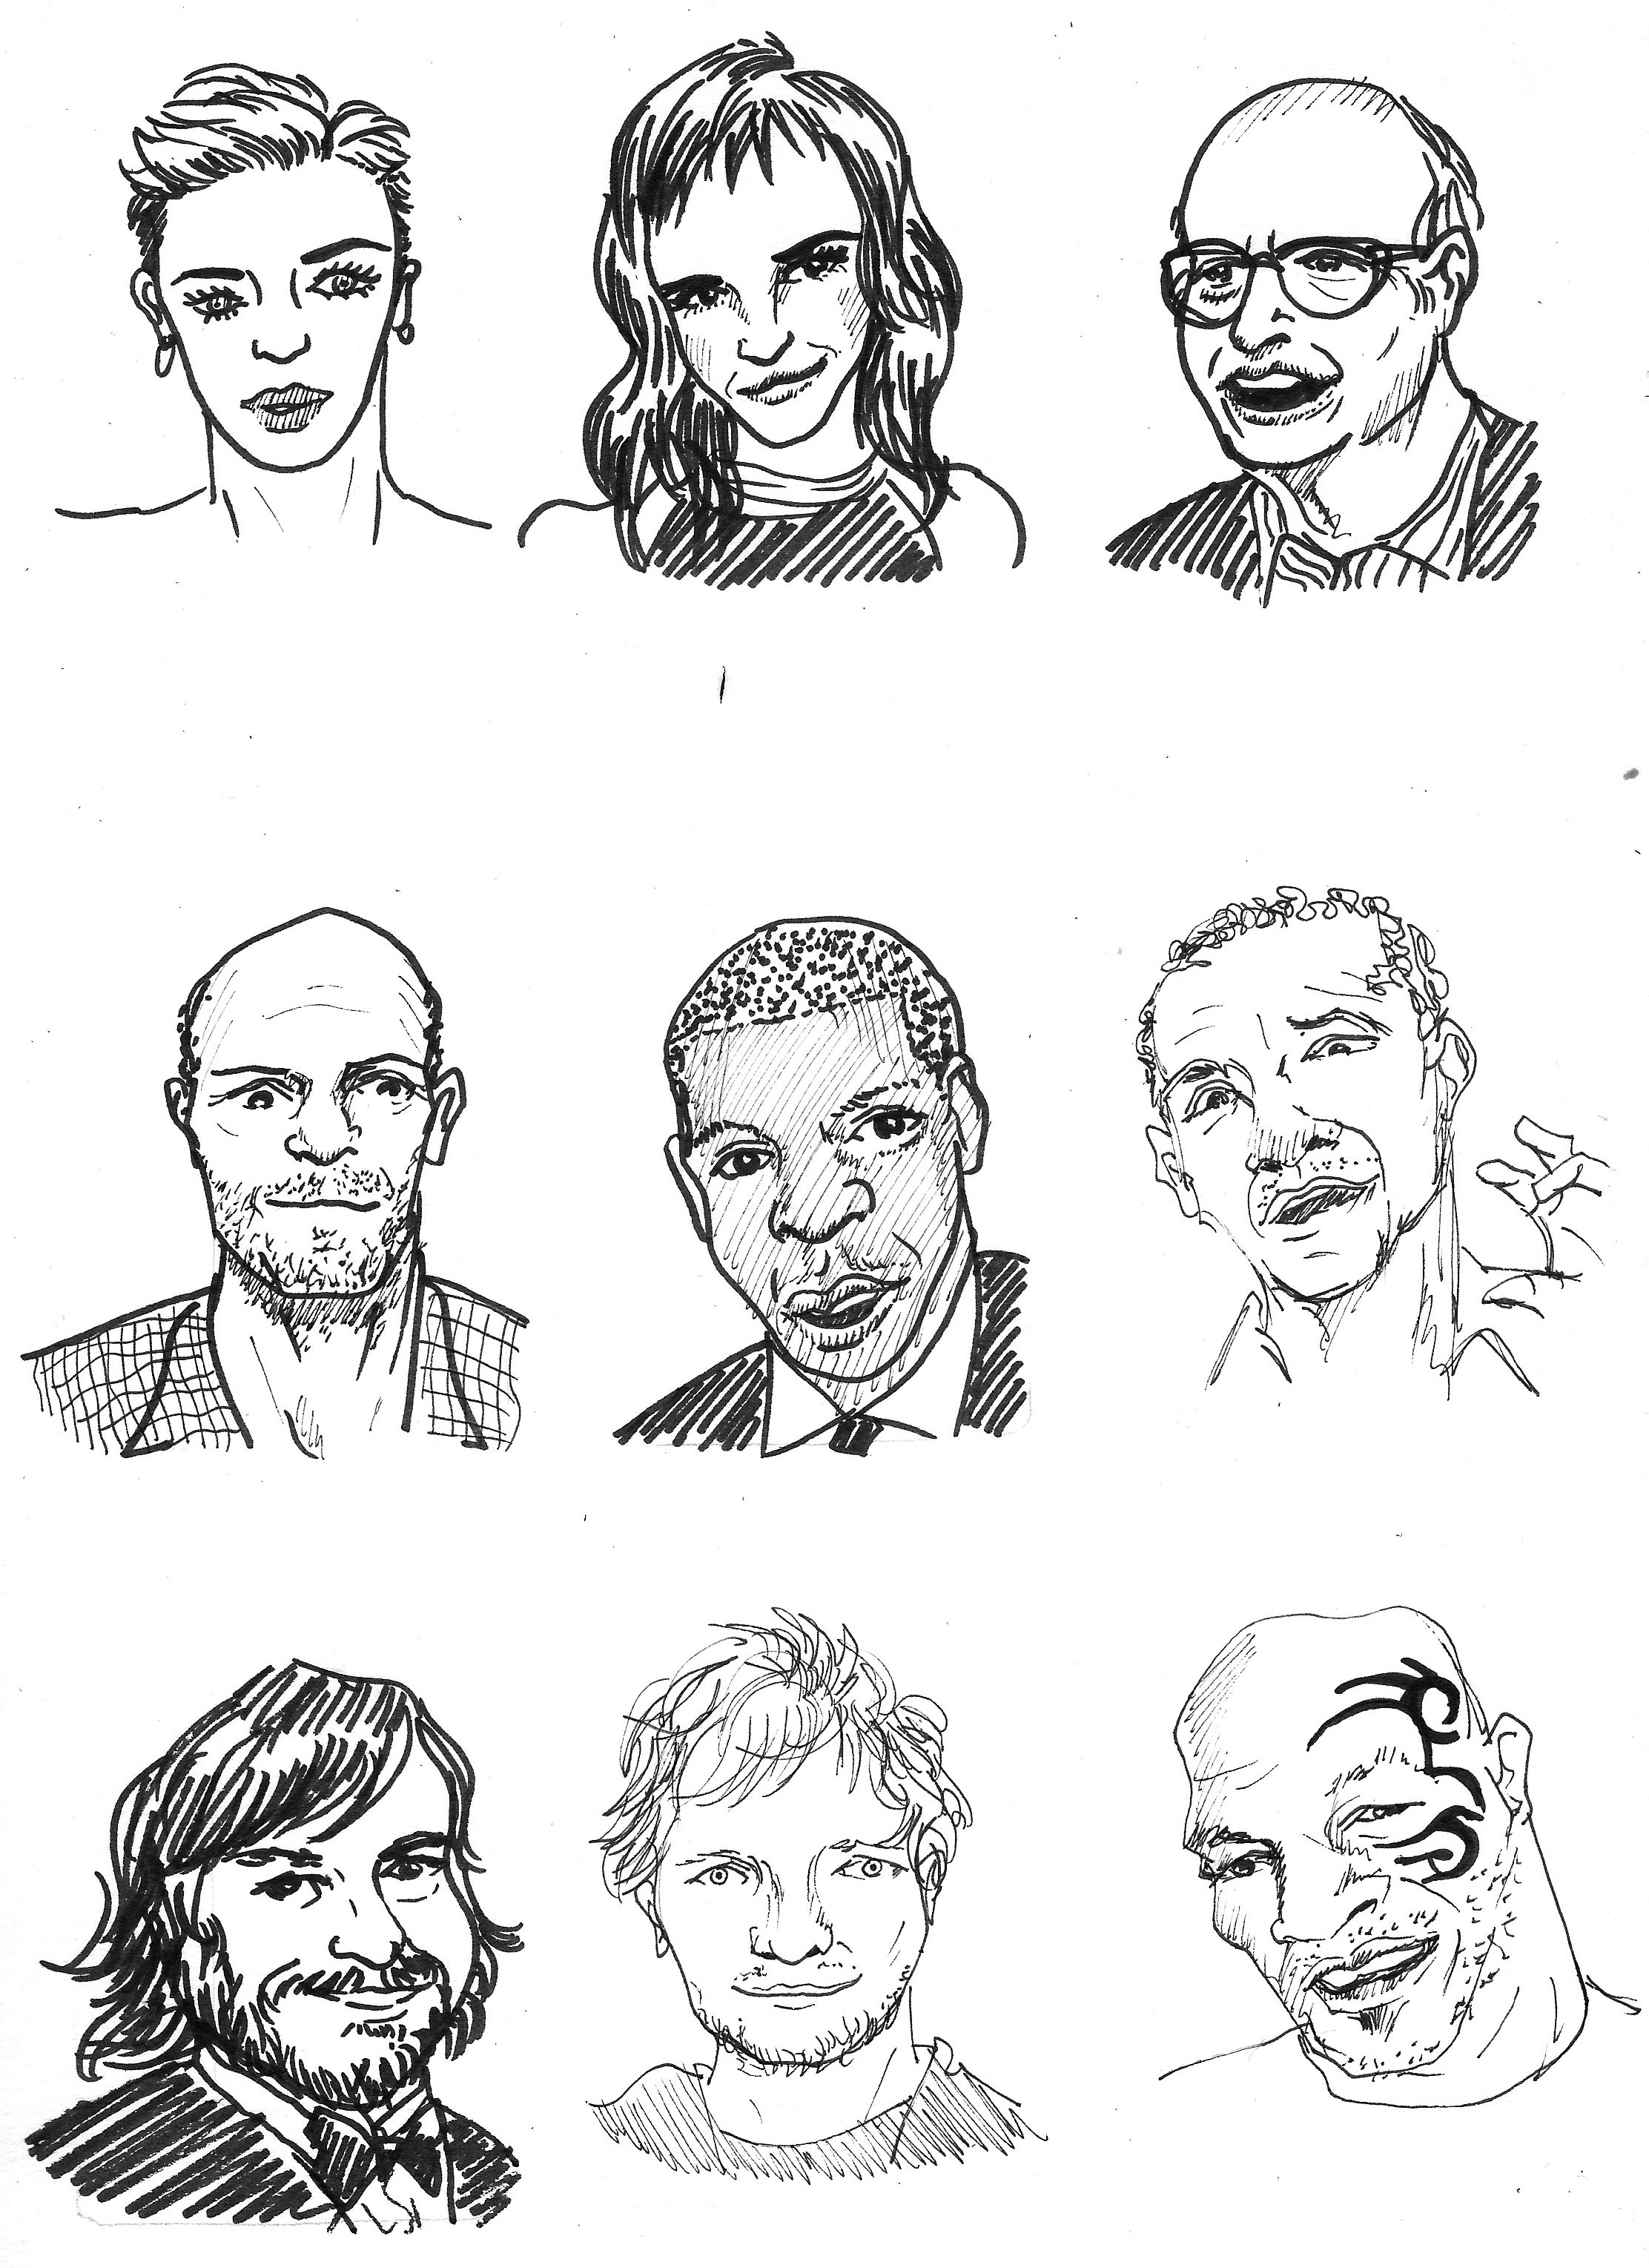 "Each tiny portrait is around 2"" x 3"" and took me around 5-6 minutes to finish, so to fill up a page would take around an hour. It's a perfect daily sketching exercise."